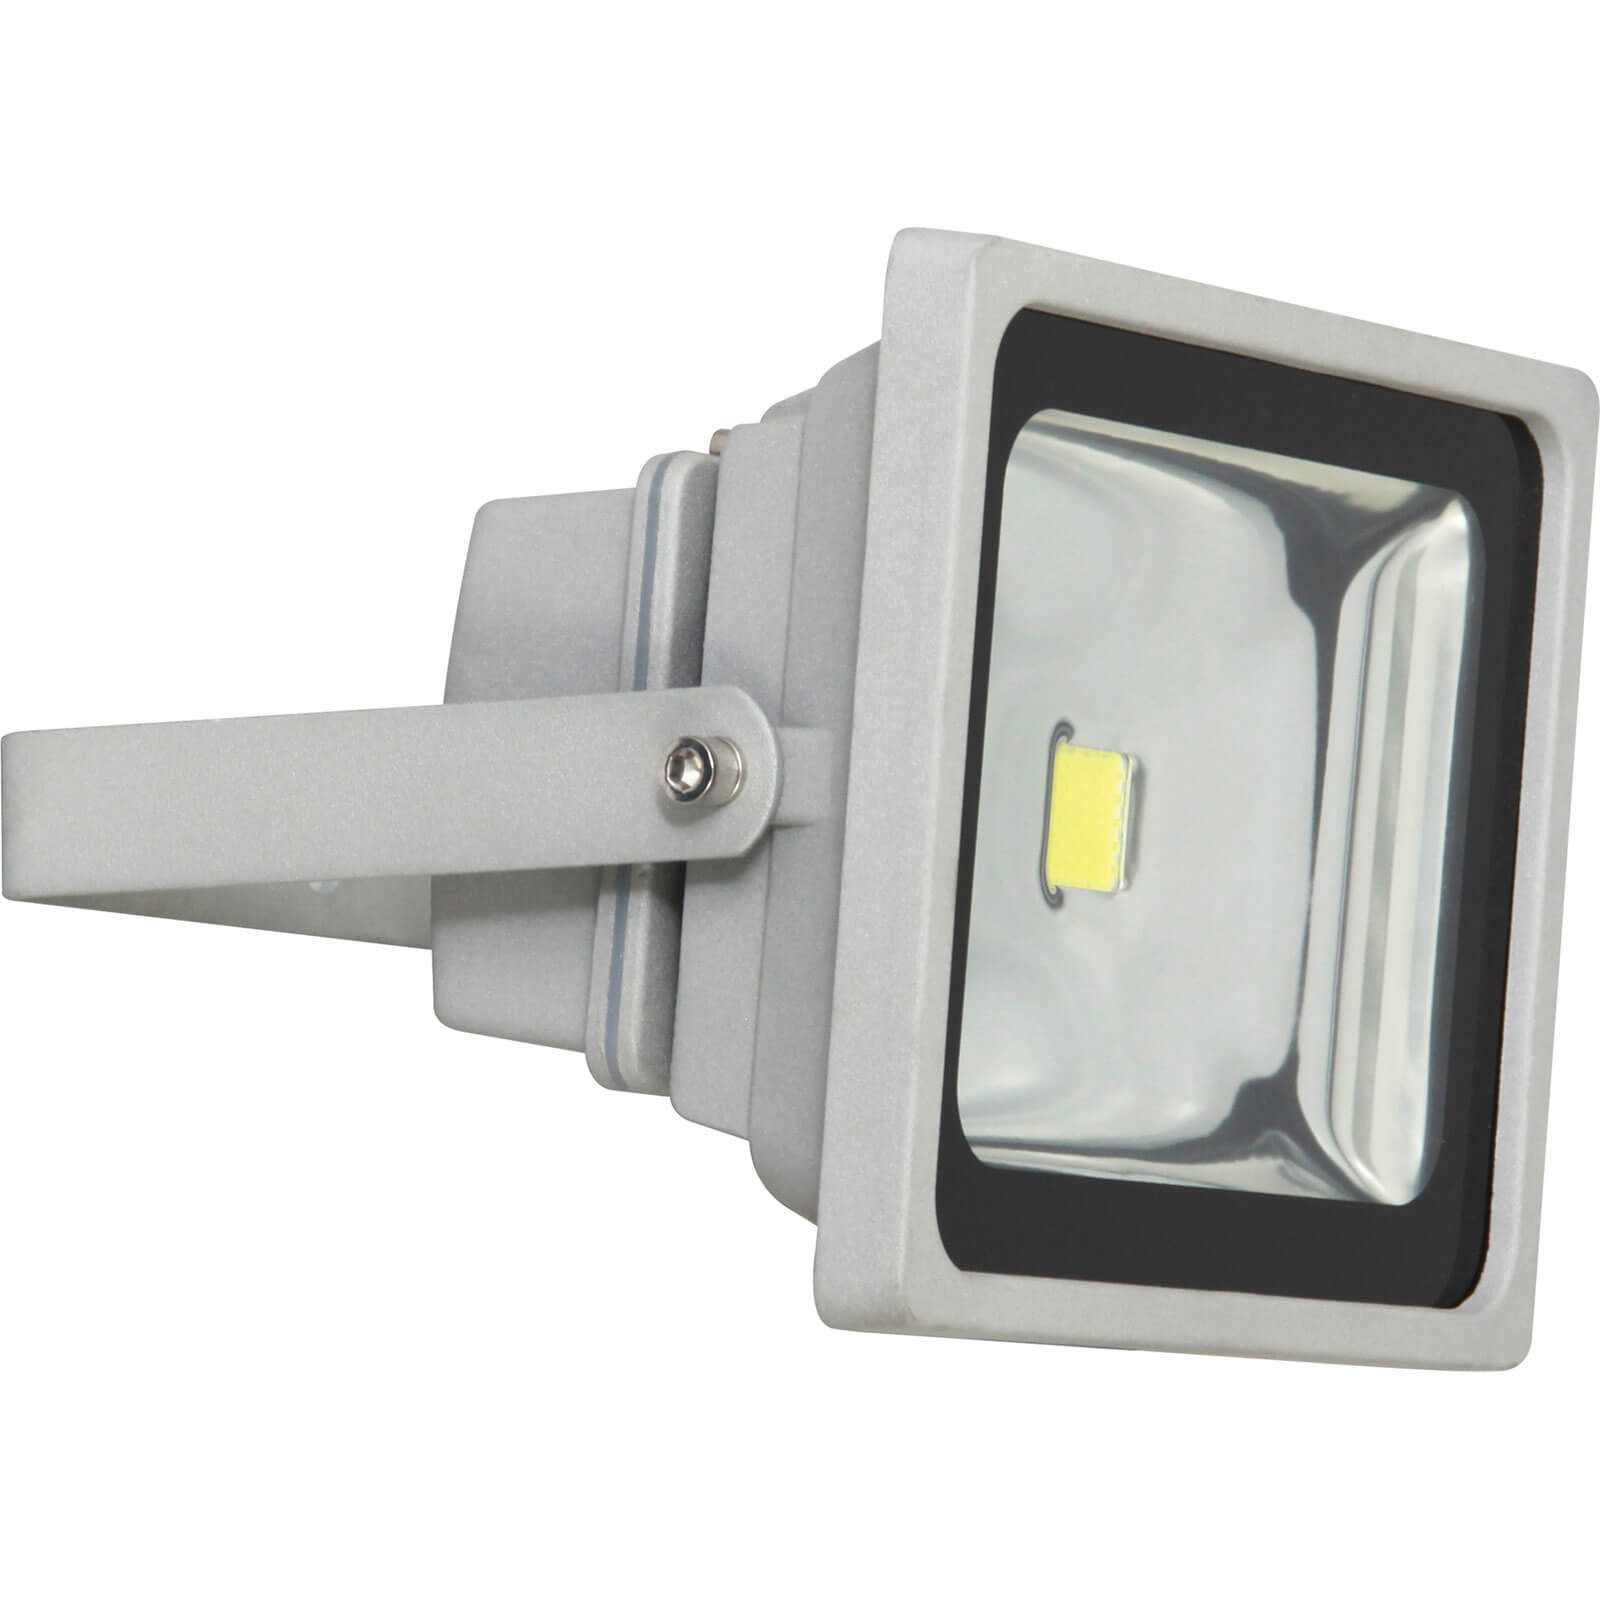 Byron XQ1223 SMD LED Floodlight 1800 Lumens 30w 240v